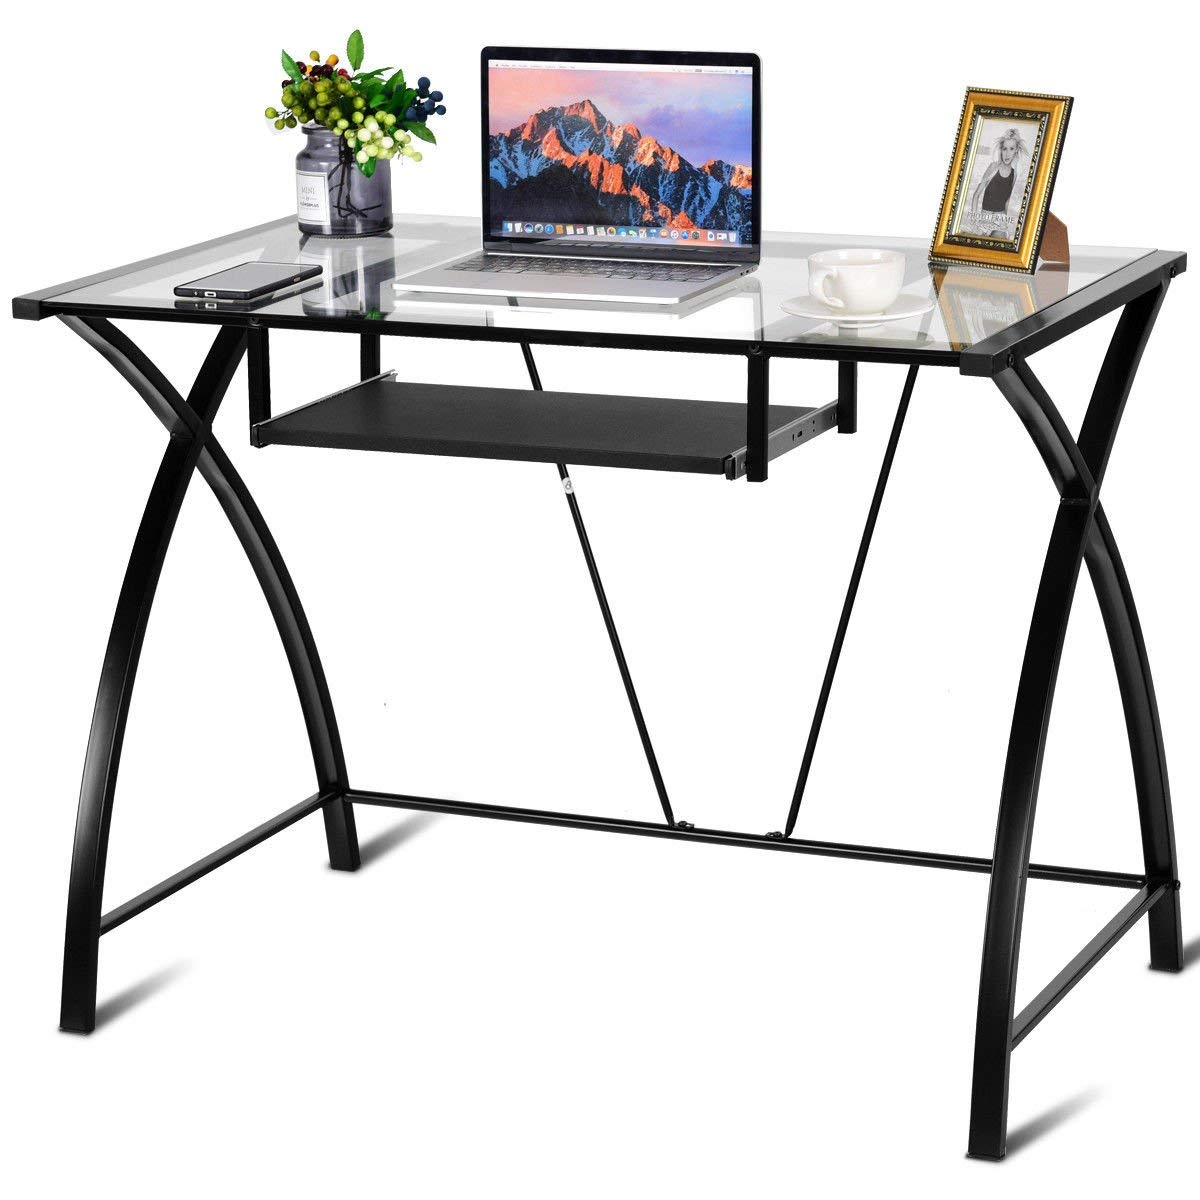 ShopForAllYou Desk Table Office Clear Glass Top Computer Desk w/Pull-Out Keyboard Tray Home Office Furniture